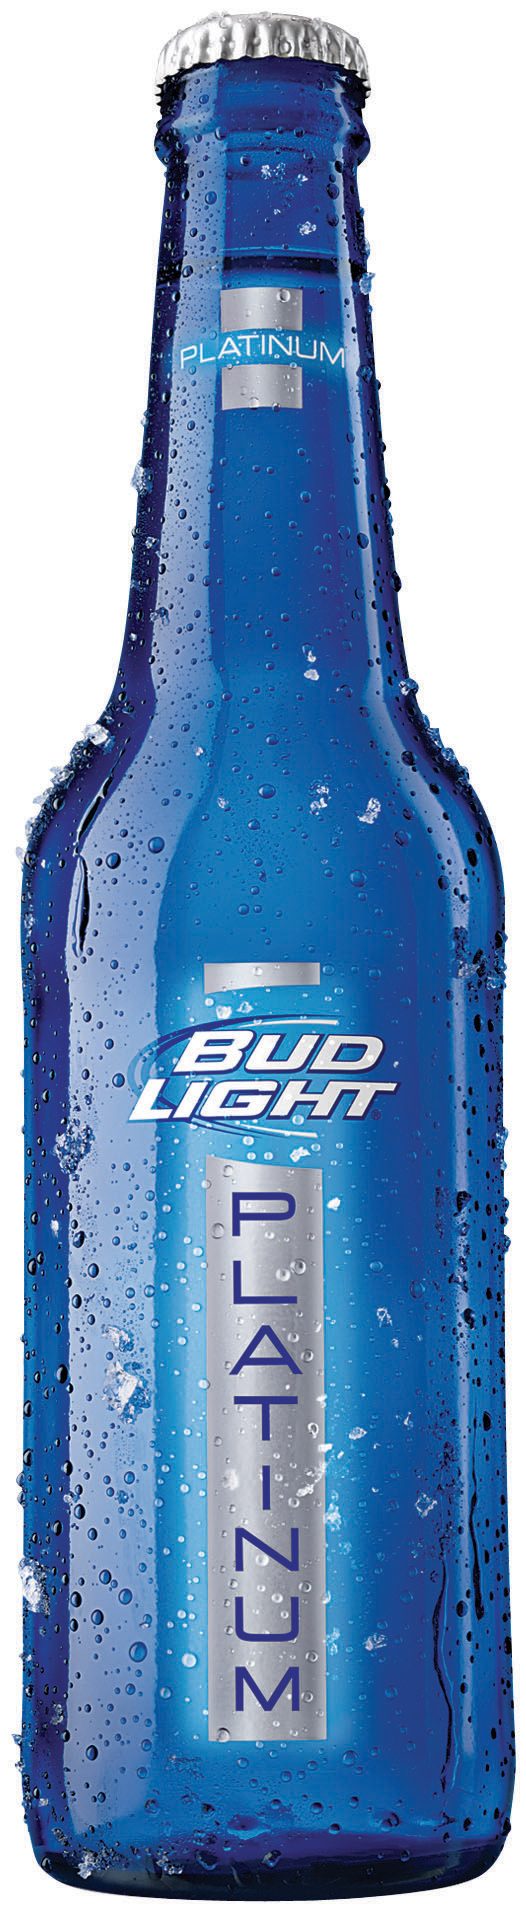 to platinum this of bud the flavor drinks img light design week